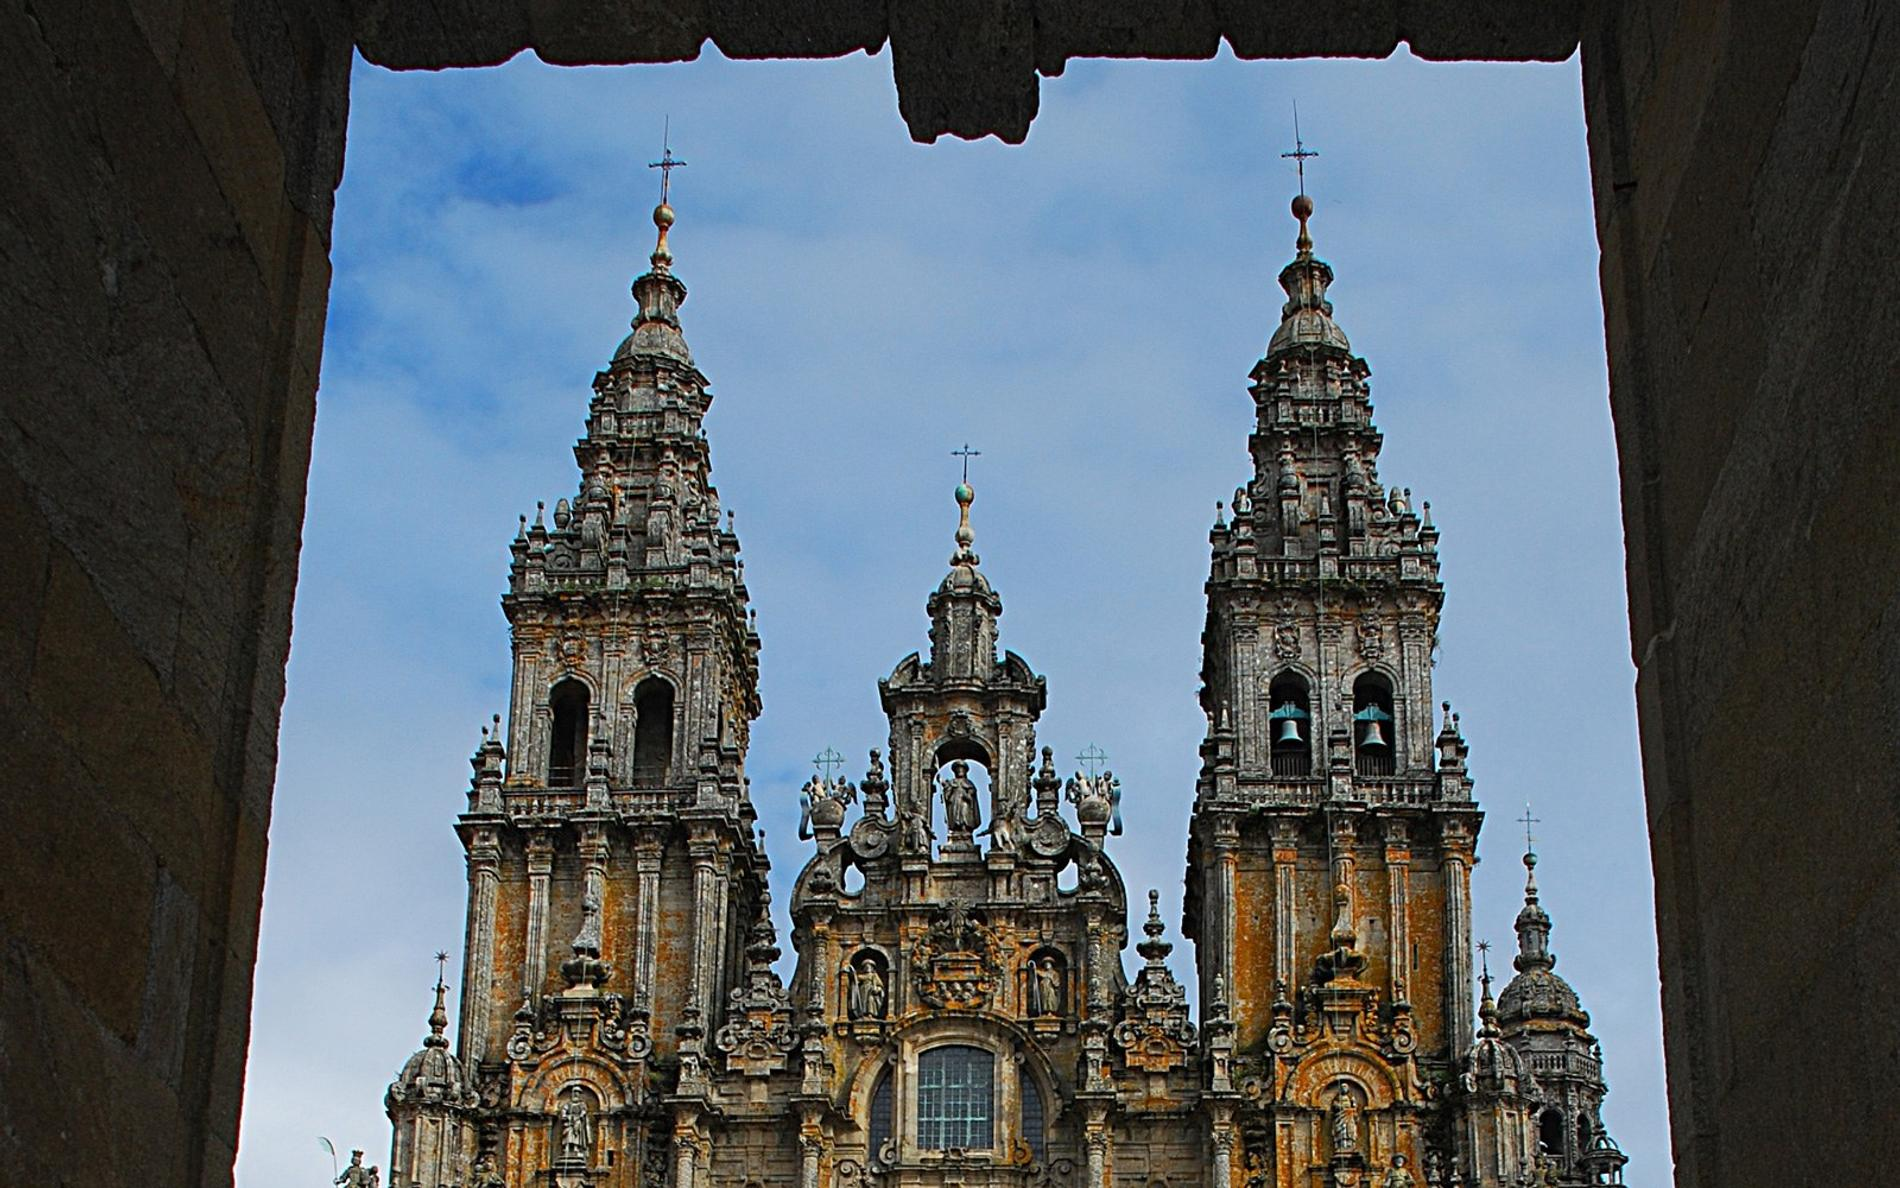 azua de compostela divorced singles dating site Donate now donate now and help preserve world heritage sites.